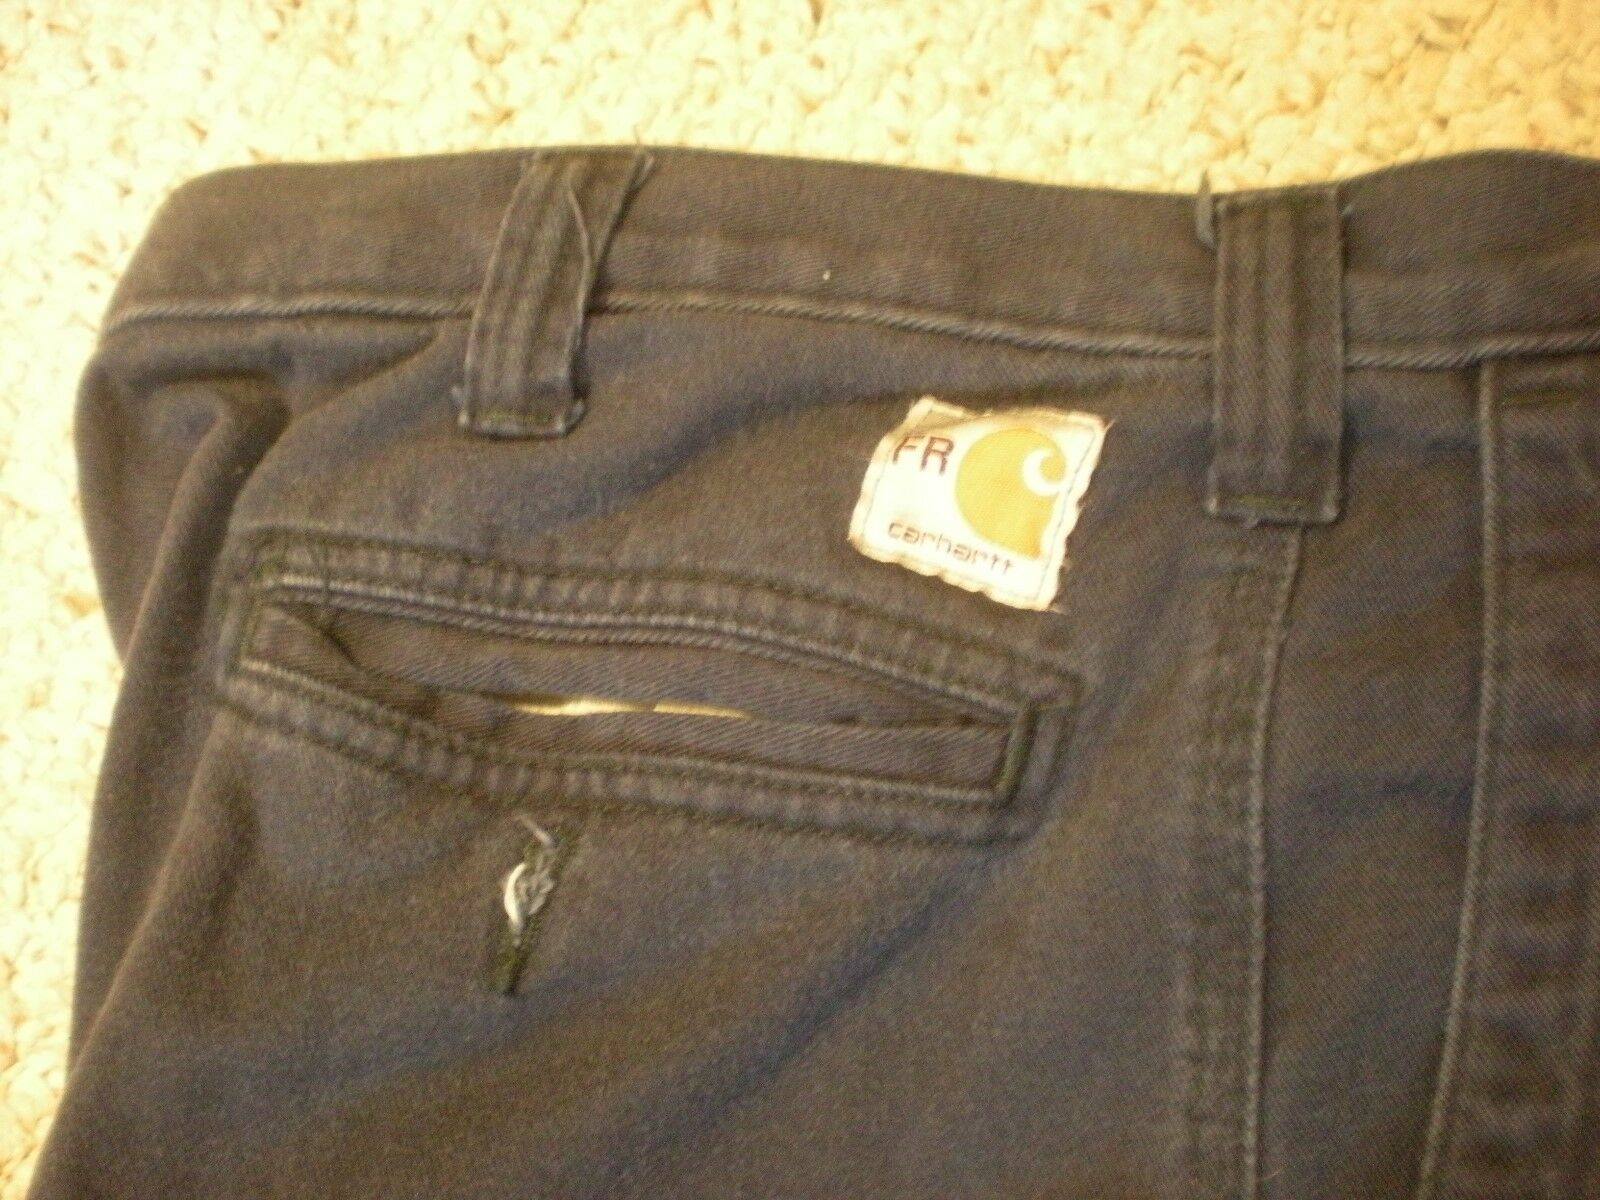 3 Carhartt FR Navy bluee Pants (371-20) Relaxed Fit 44X32 (Good Condition)  D427